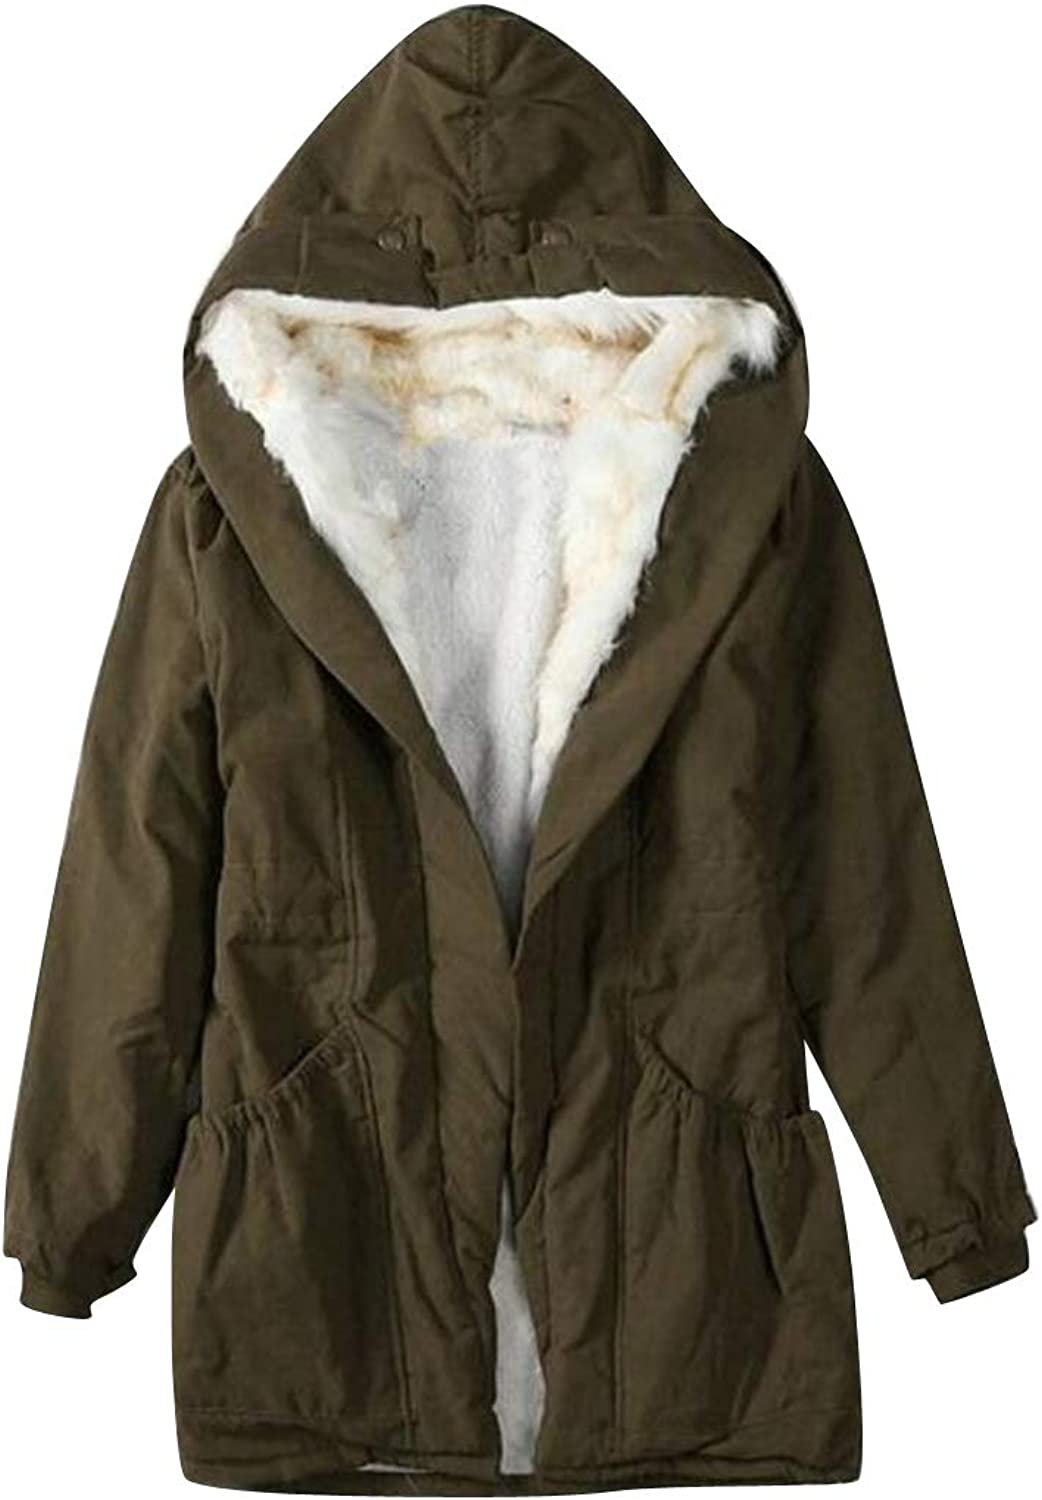 YYG Womens Mid Length Winter Loose Faux Fur Hoodie Thermal Quilted Jacket Parka Coat Overcoat